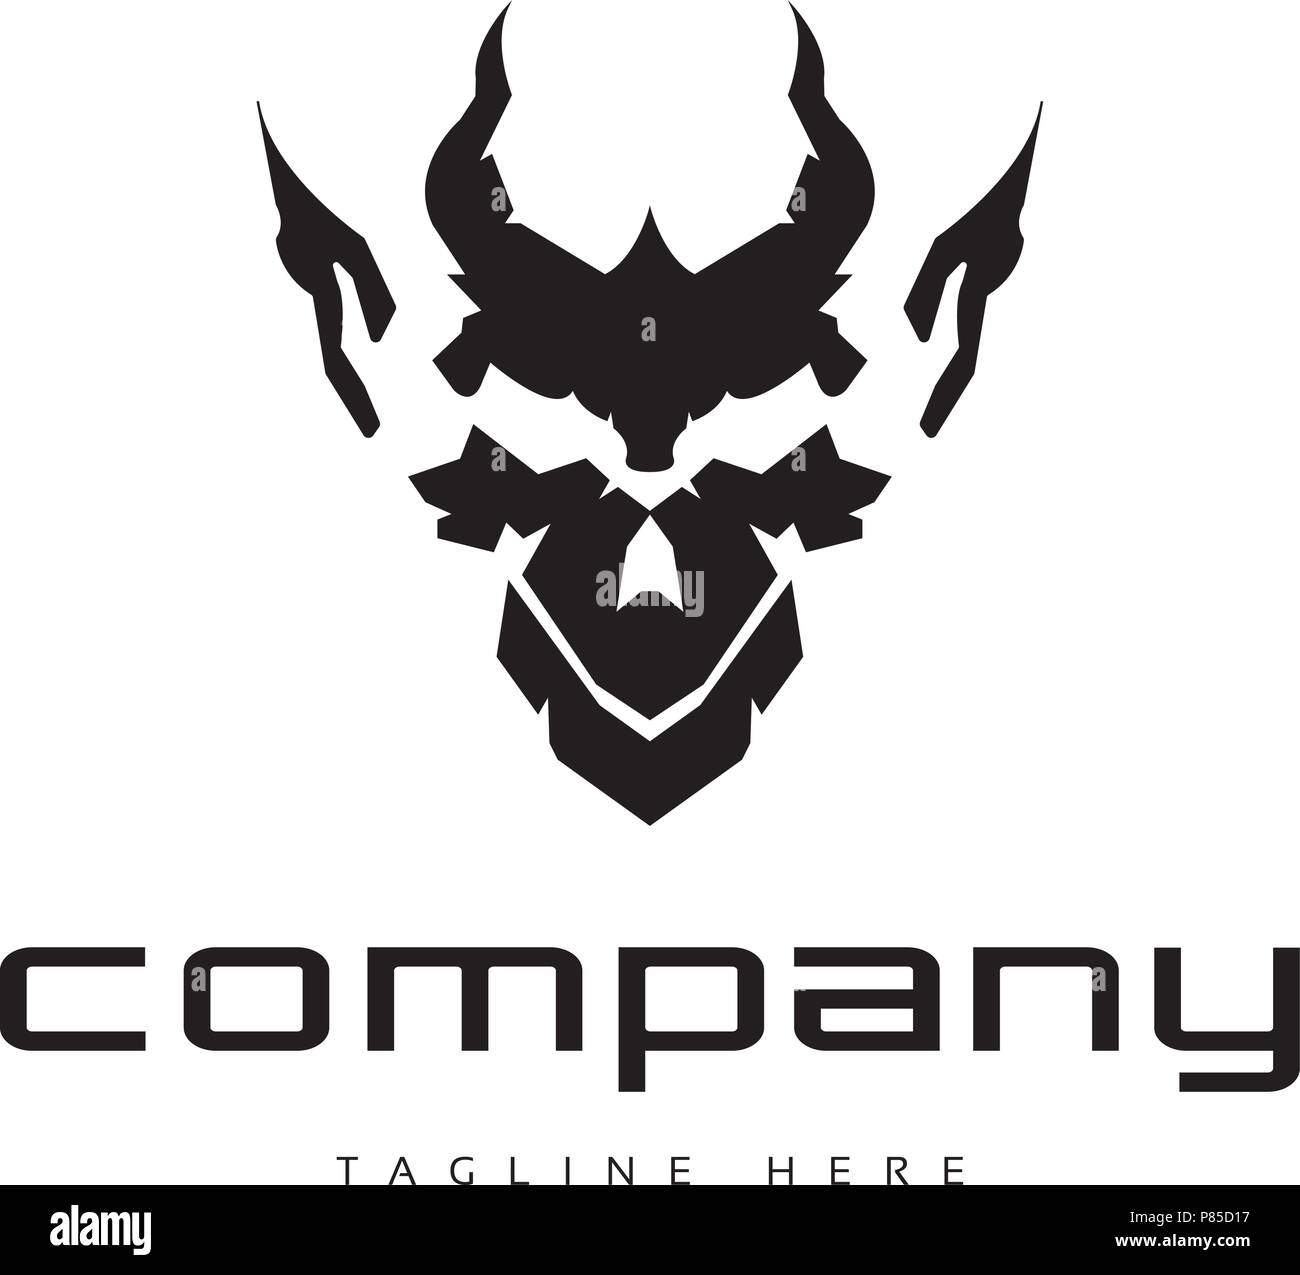 devil logo high resolution stock photography and images alamy https www alamy com devil face logo image211561651 html